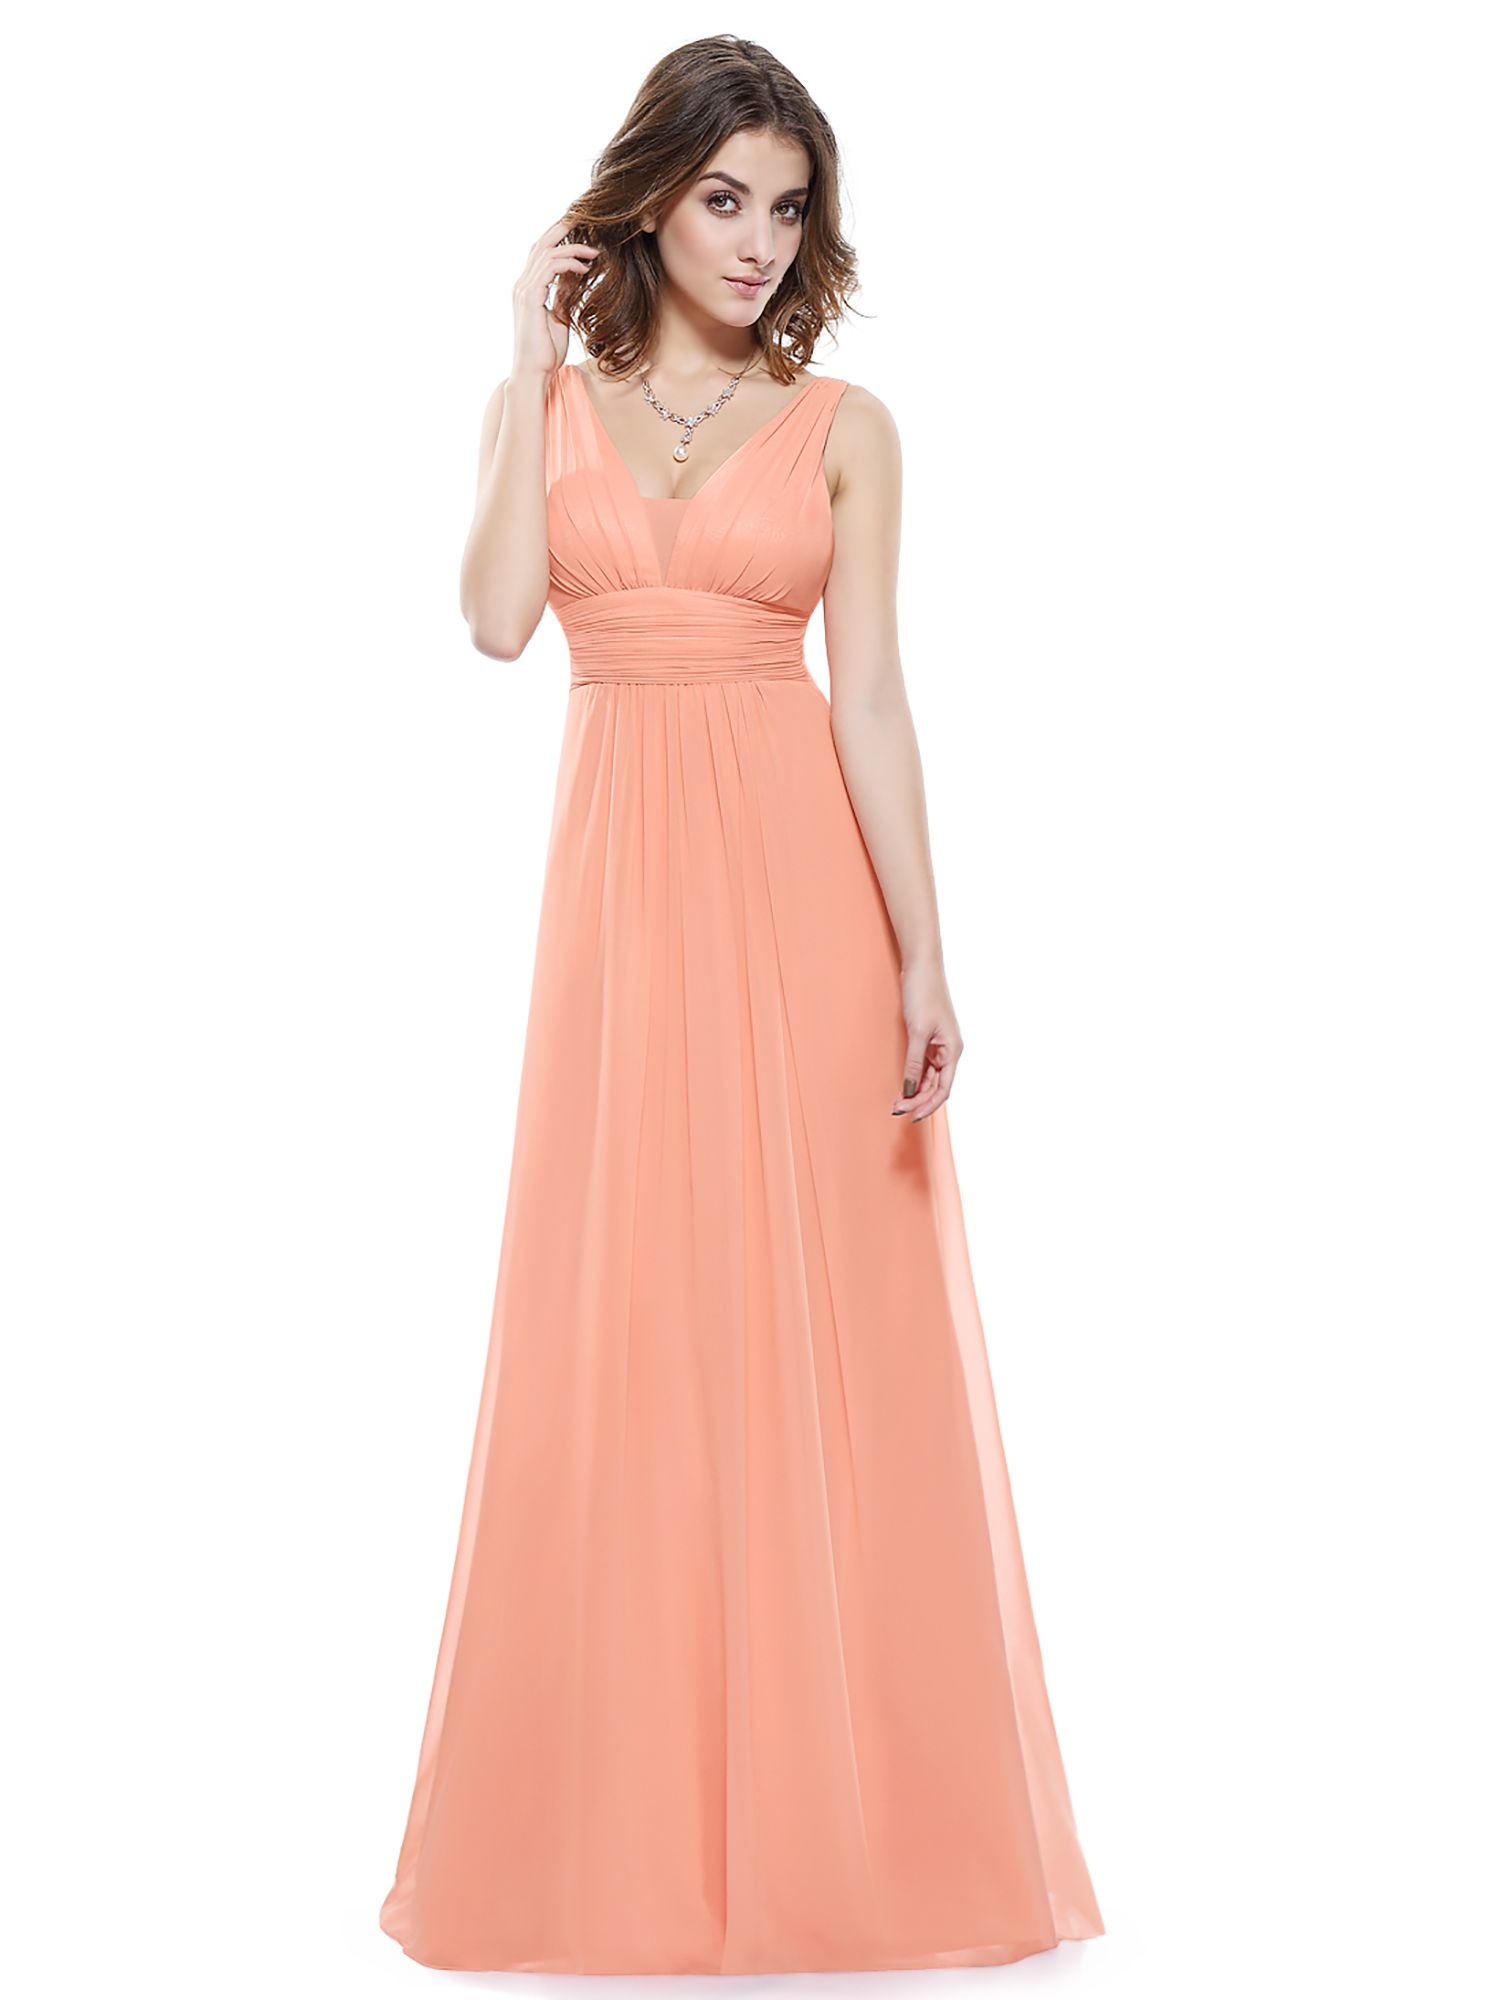 af71d09e5fa Ever-Pretty Women s Sexy Long Maxi V Neck Bridesmaid Holiday Party Evening  Prom Summer Dresses for Women 08110 (Peach 14 US) Neck